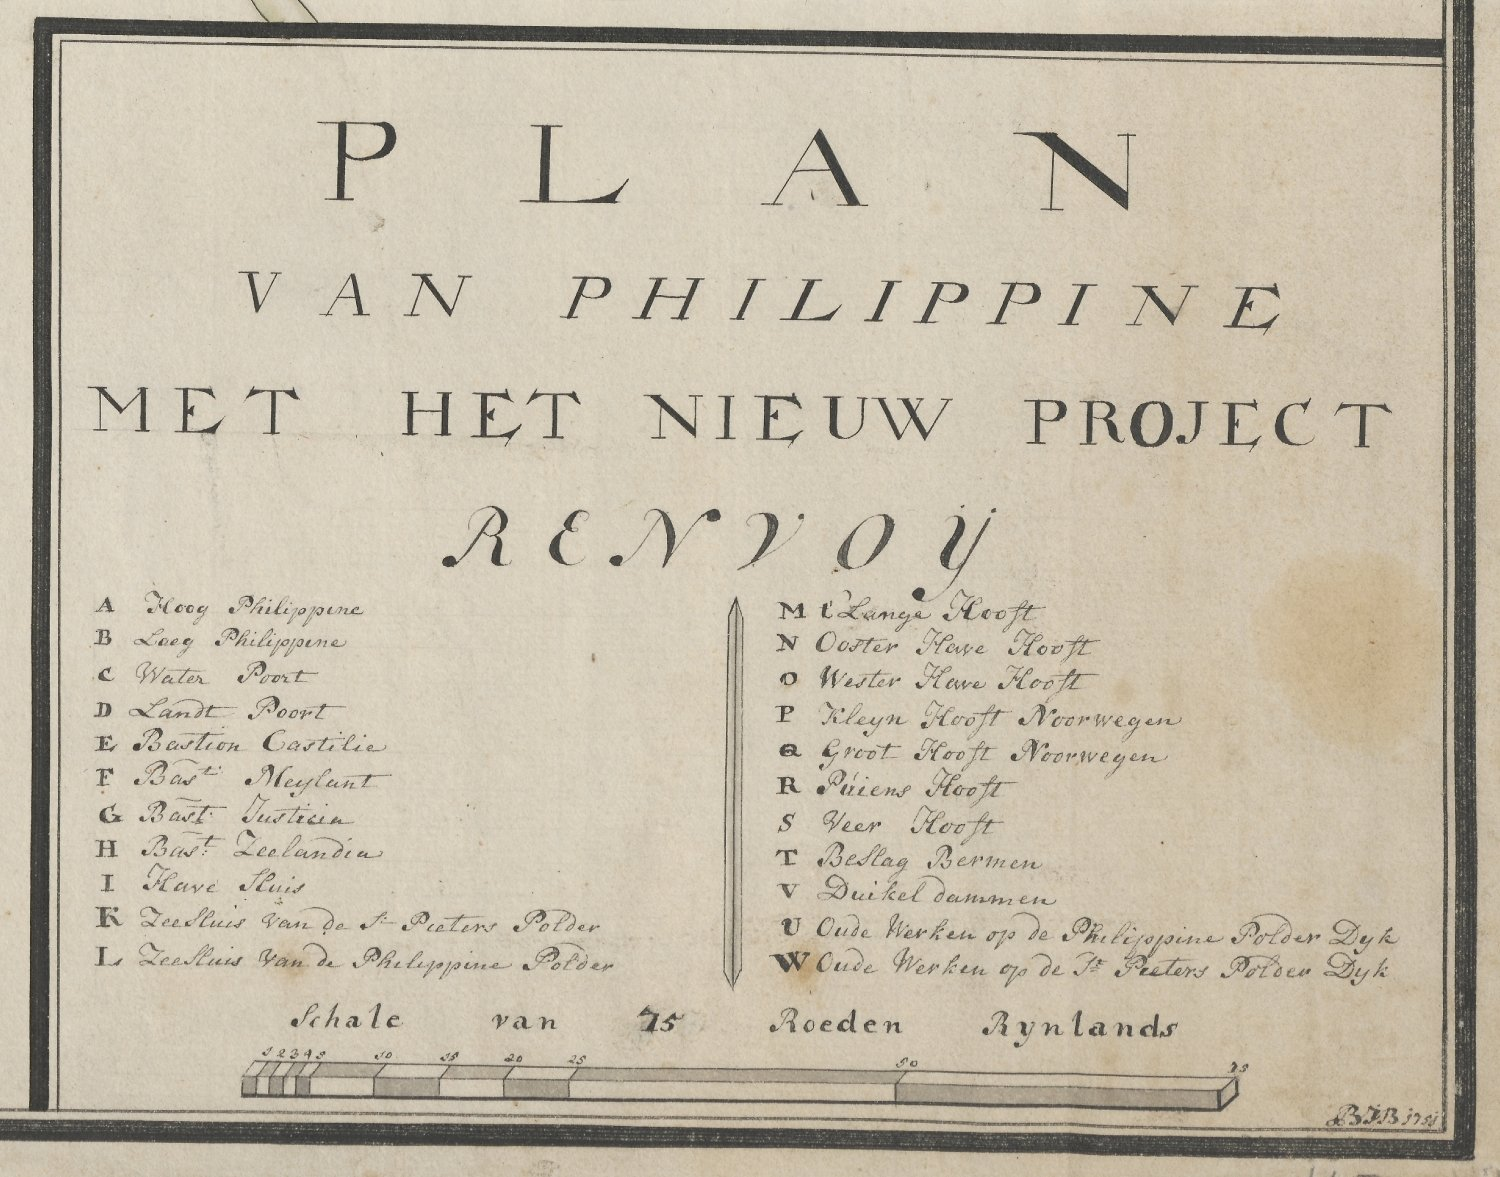 Legenda fortificatieplan voor Philippine, 1751